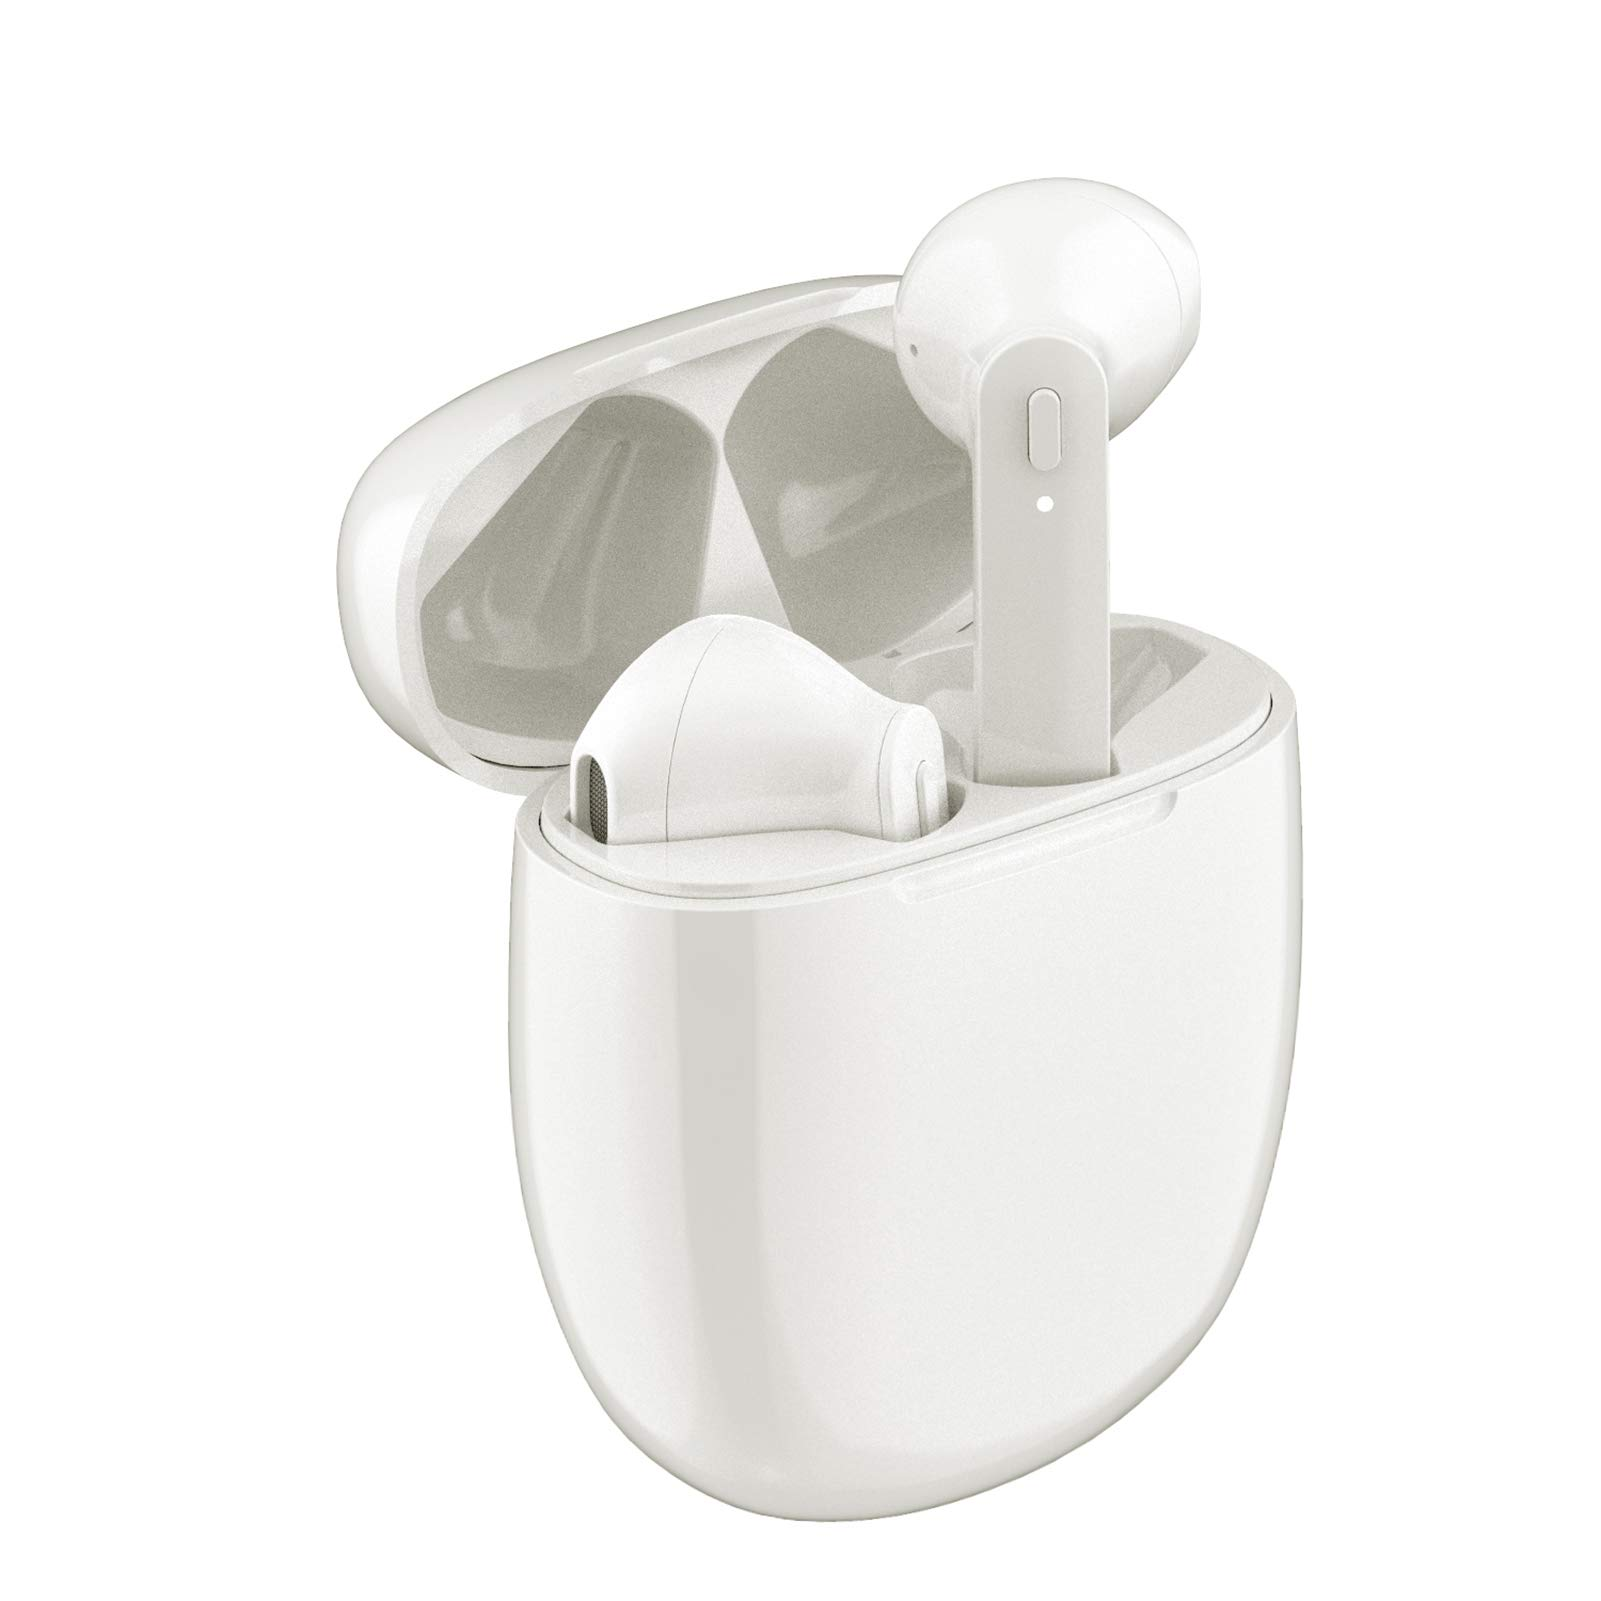 Auriculares Earbuds Inalambricos Rademax White